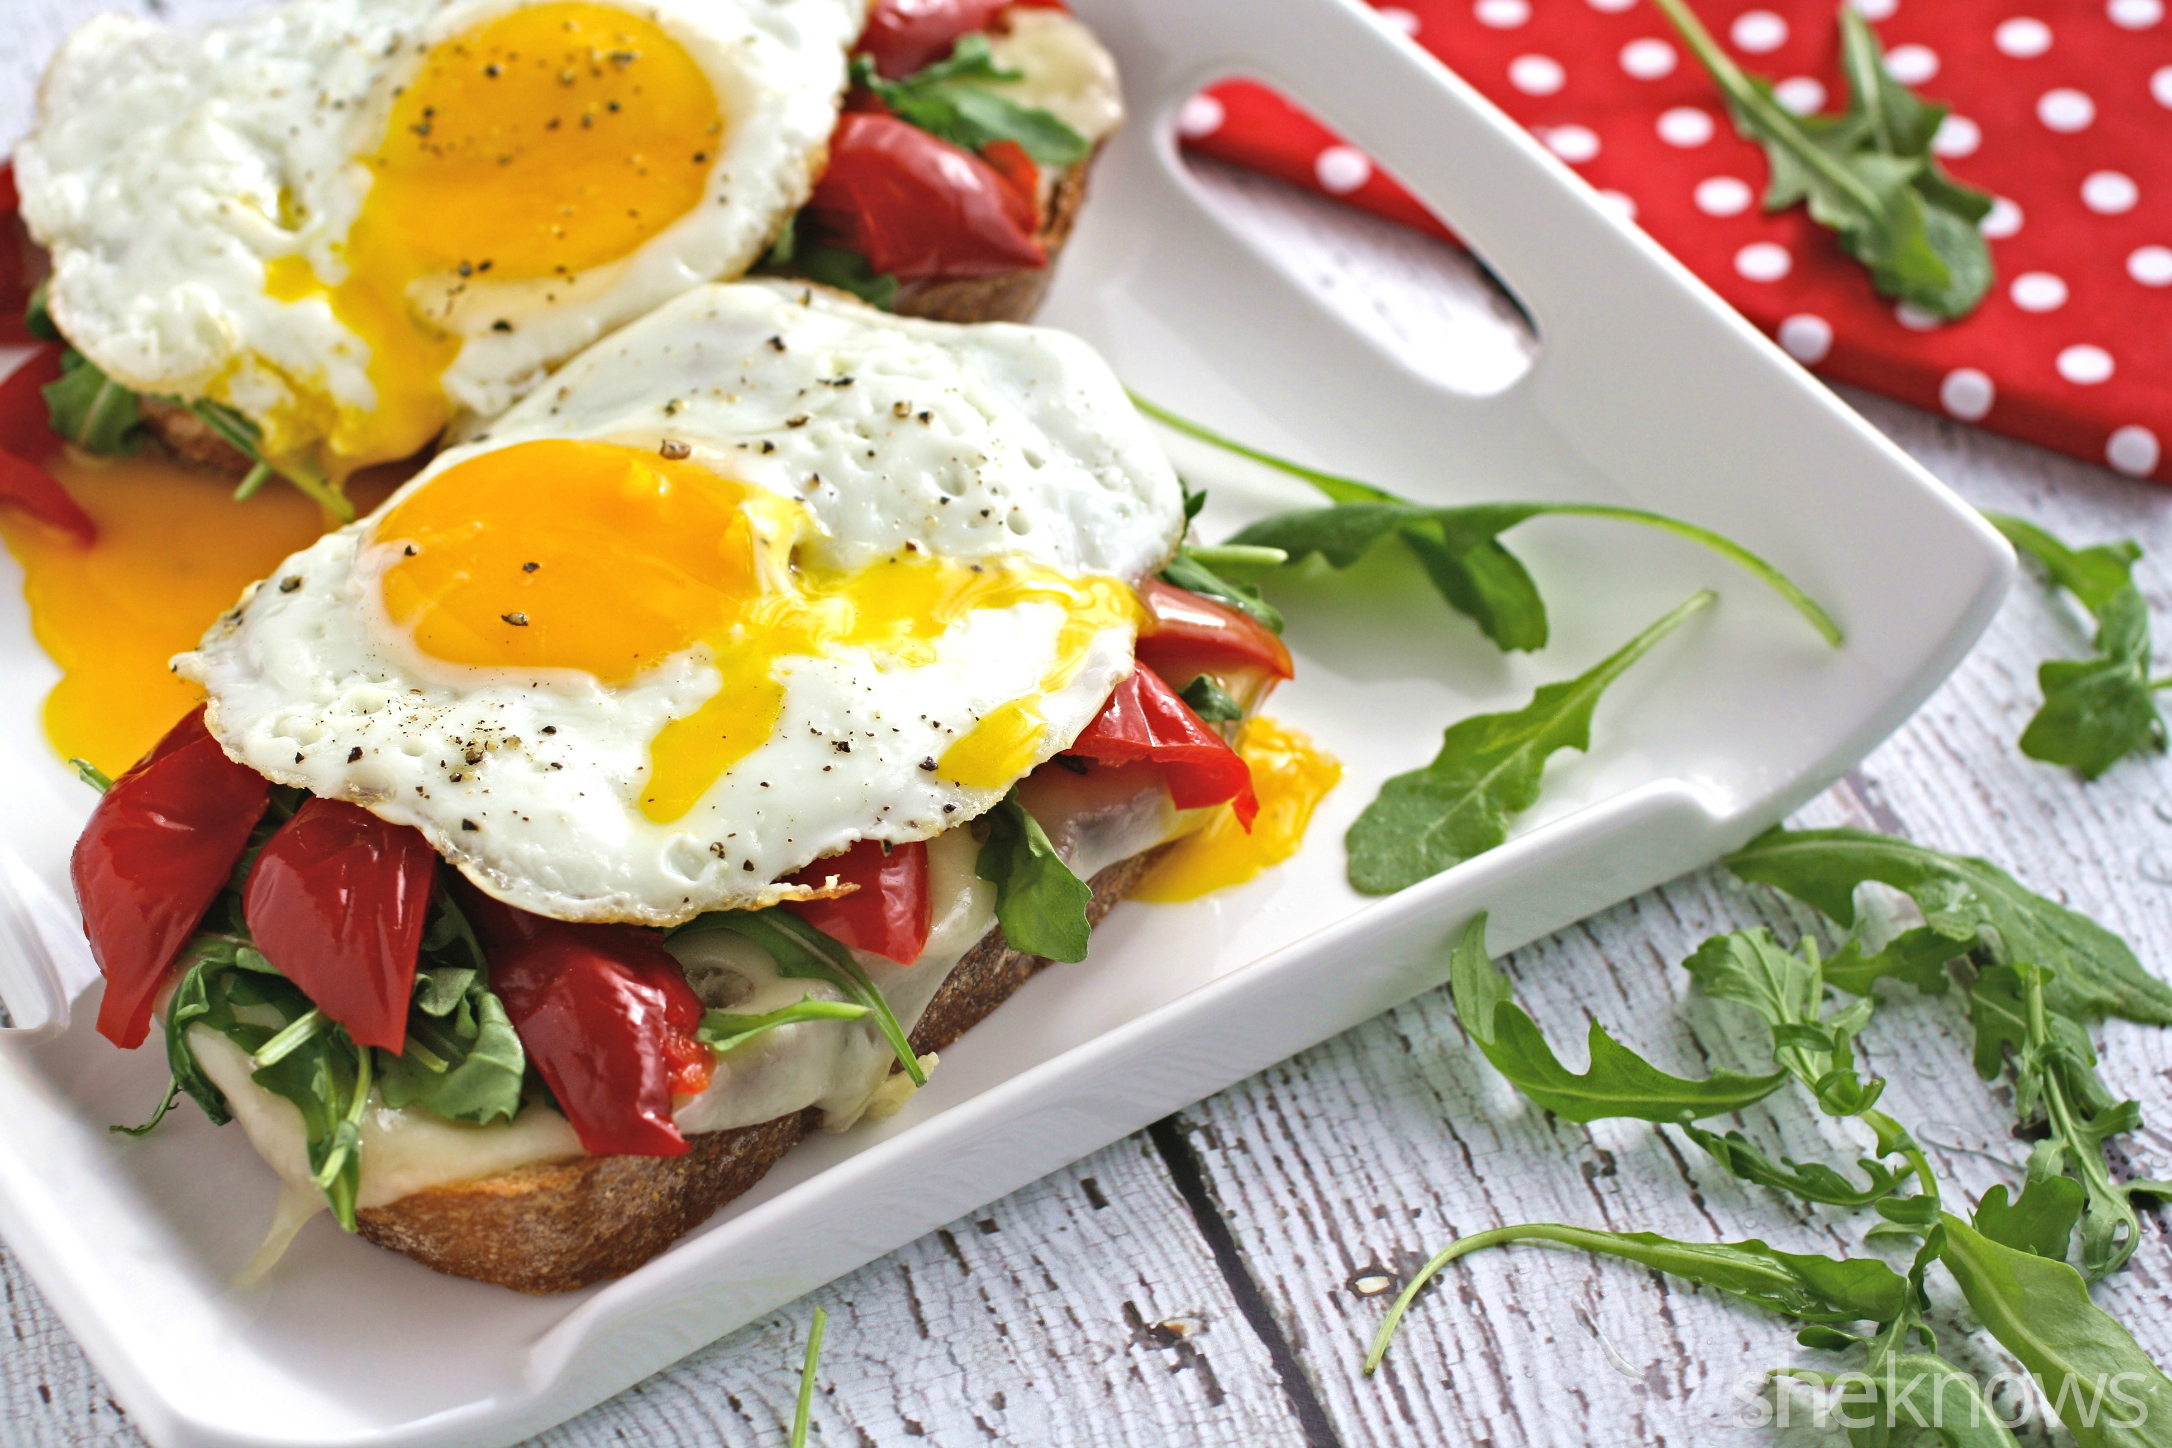 This Meatless Monday grilled cheese sandwich with roasted red peppers, arugula, and fried egg is great for any meal of the day